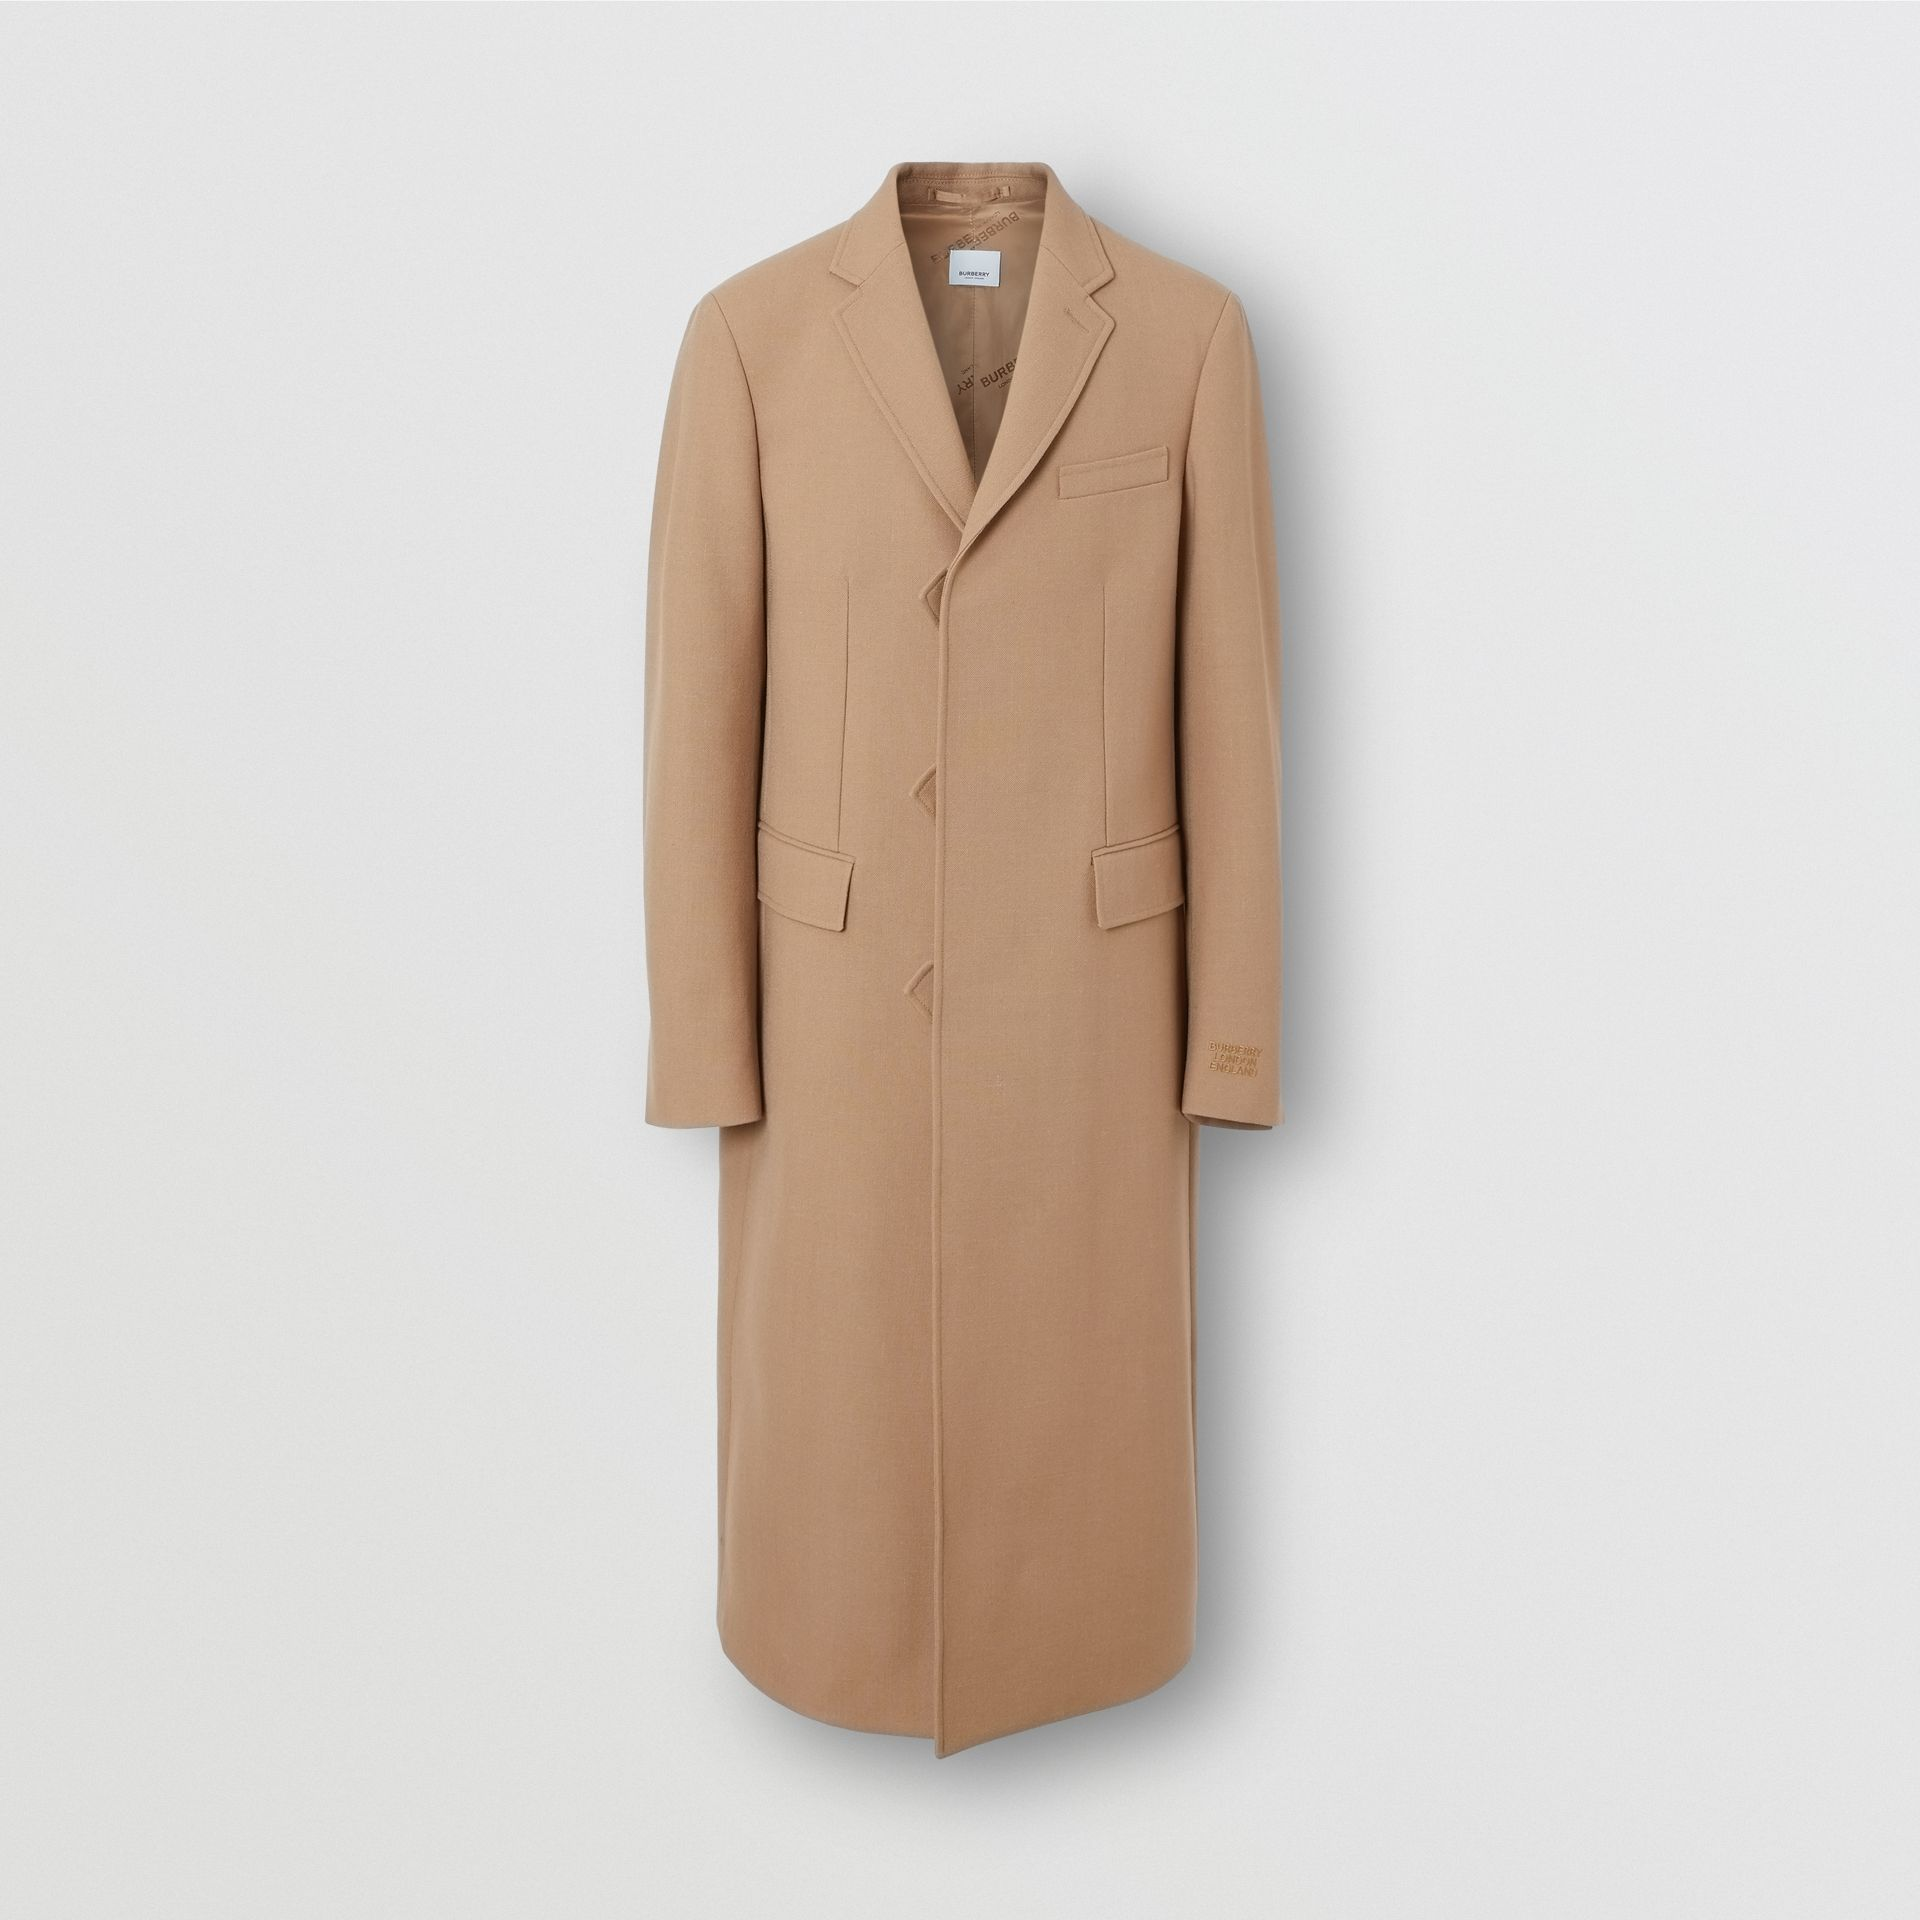 Logo Embroidered Wool Coat in Camel - Men | Burberry - gallery image 2